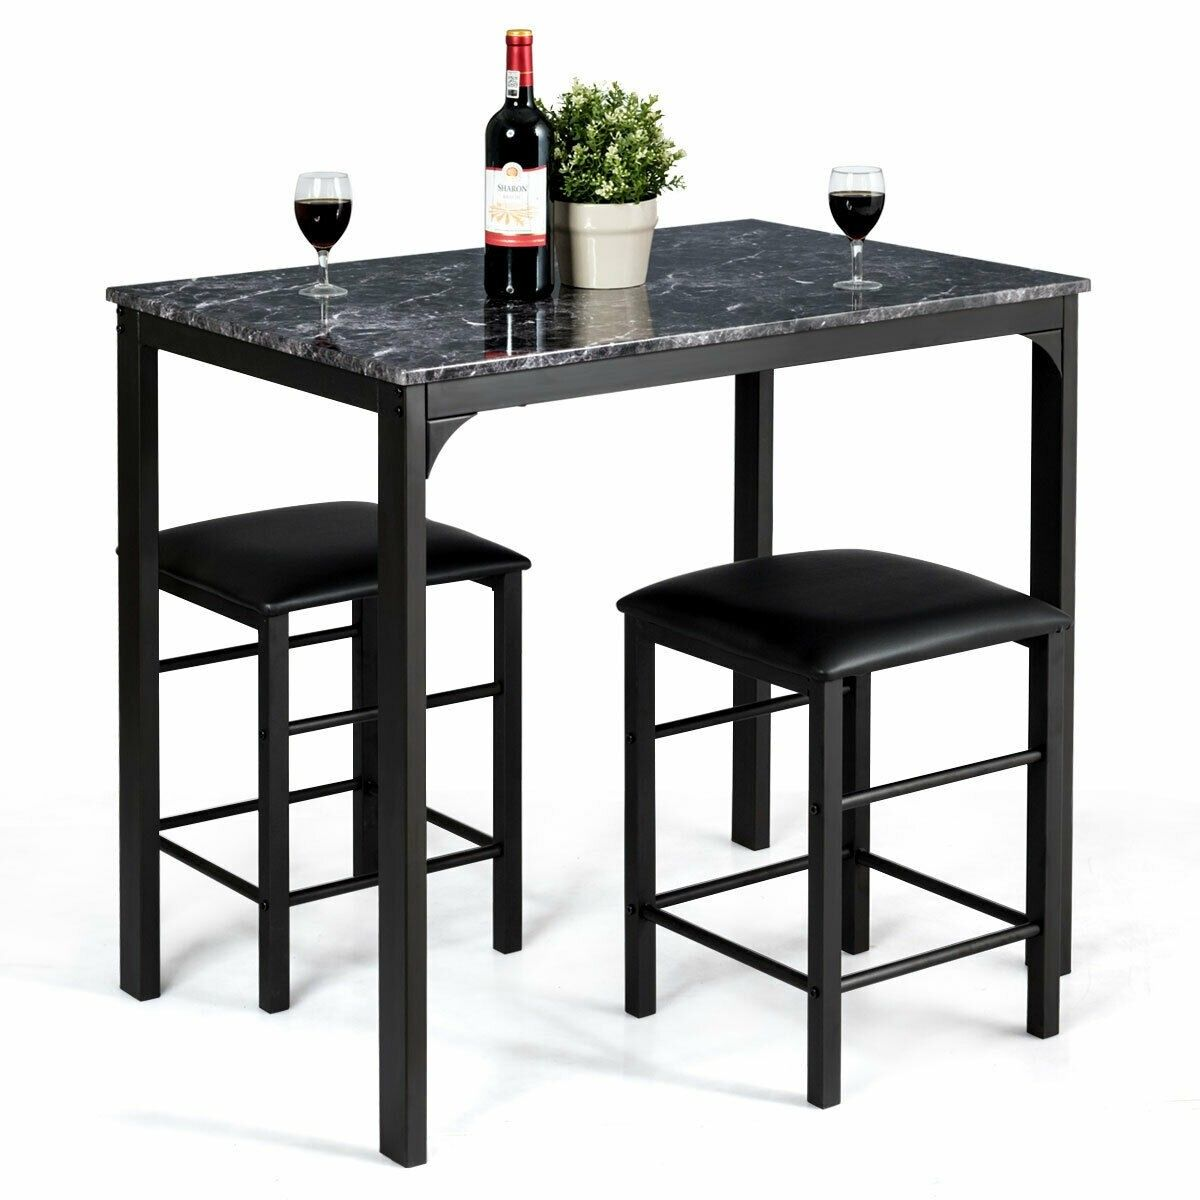 3 Pcs Counter Height Dining Set Faux Marble Table In 2020